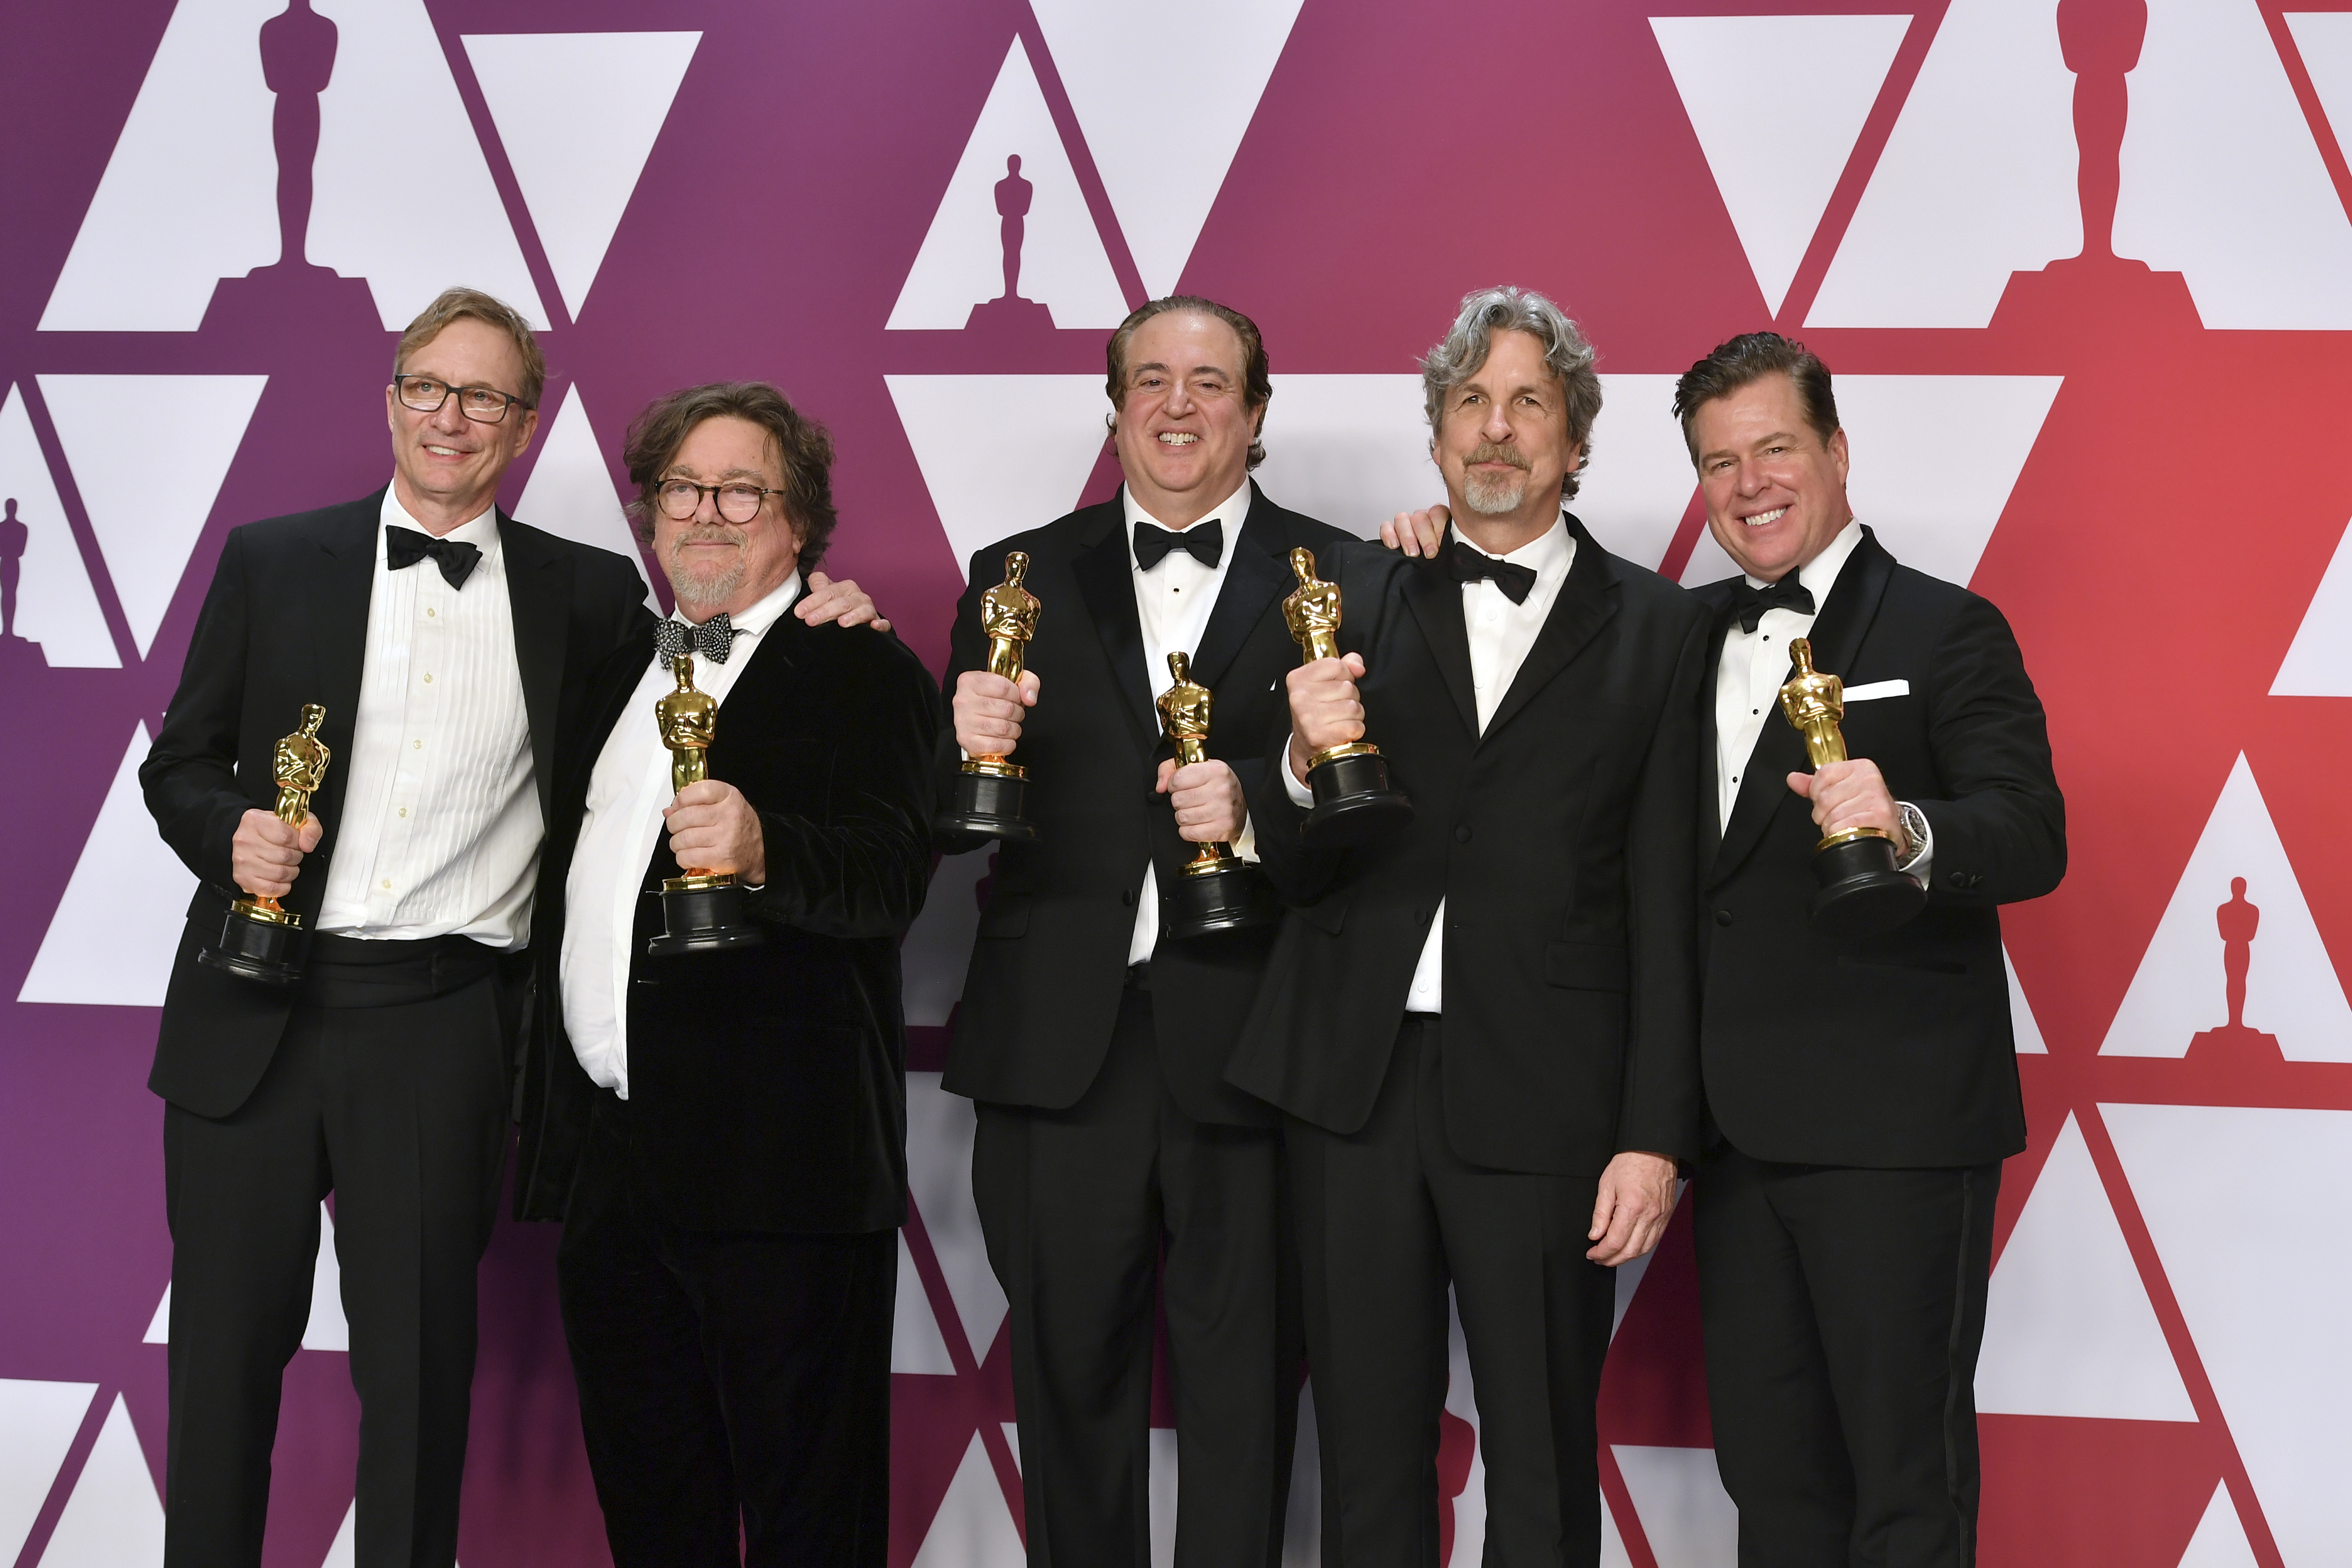 For many, 'Green Book' win was a confounding Oscar climax